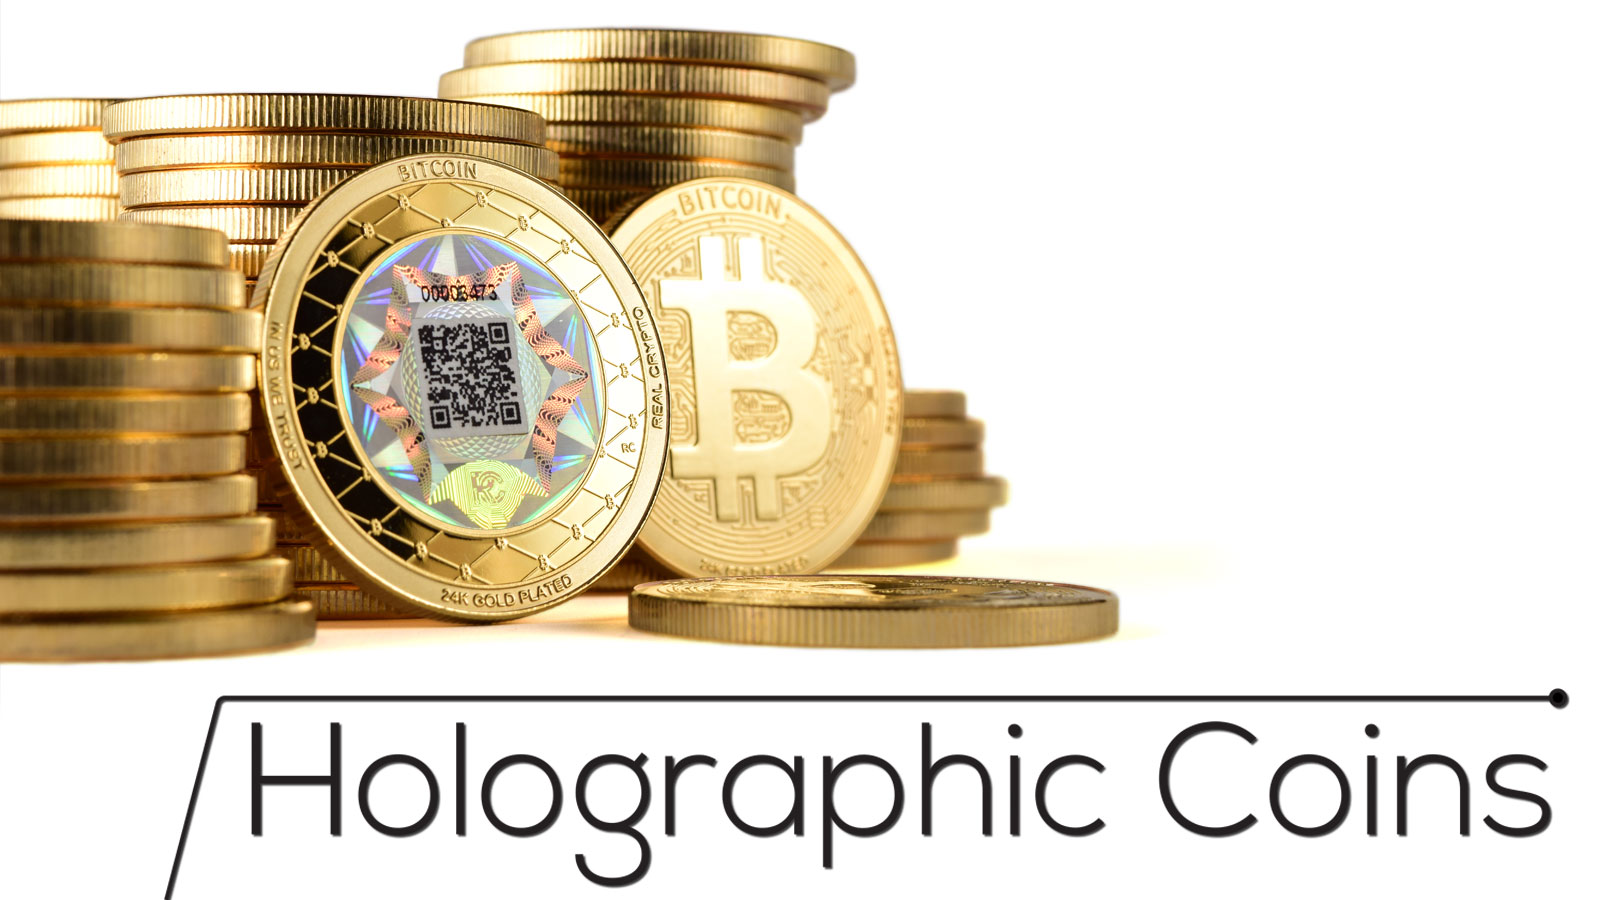 Holographic Coins